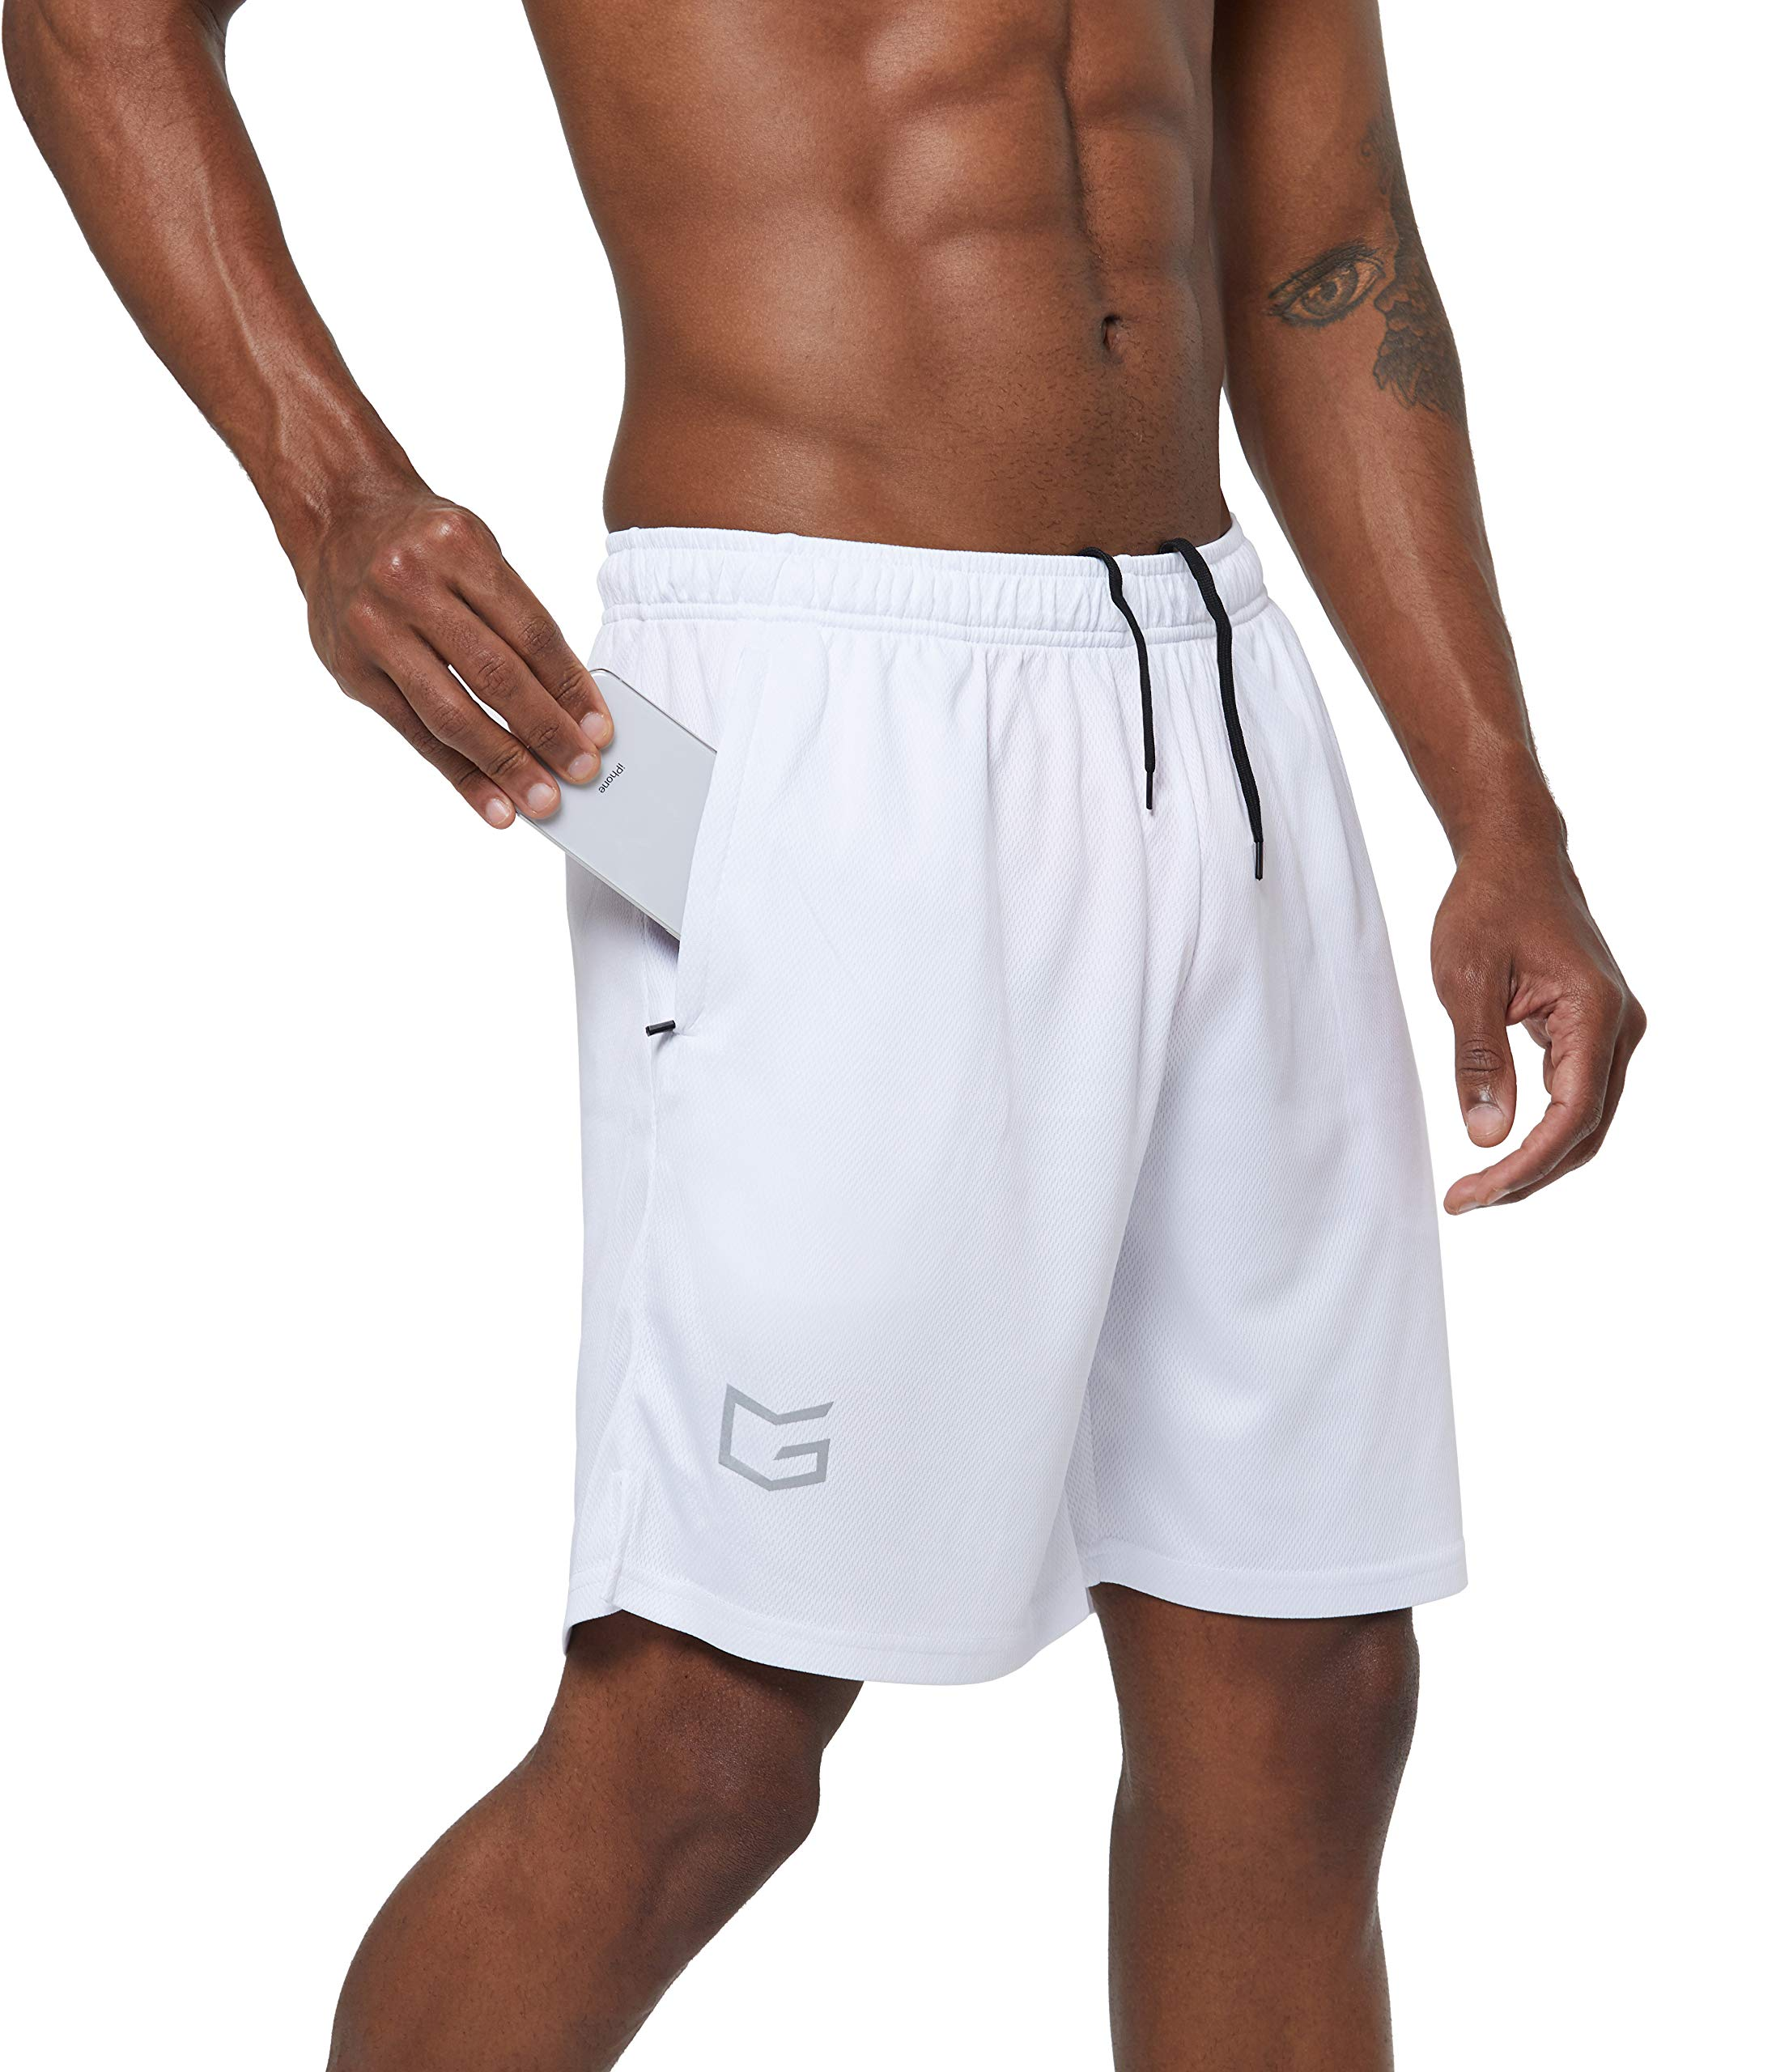 G Gradual Men's 7'' Workout Running Shorts Quick Dry Lightweight Gym Shorts with Zip Pockets (White, XX-Large) by G Gradual